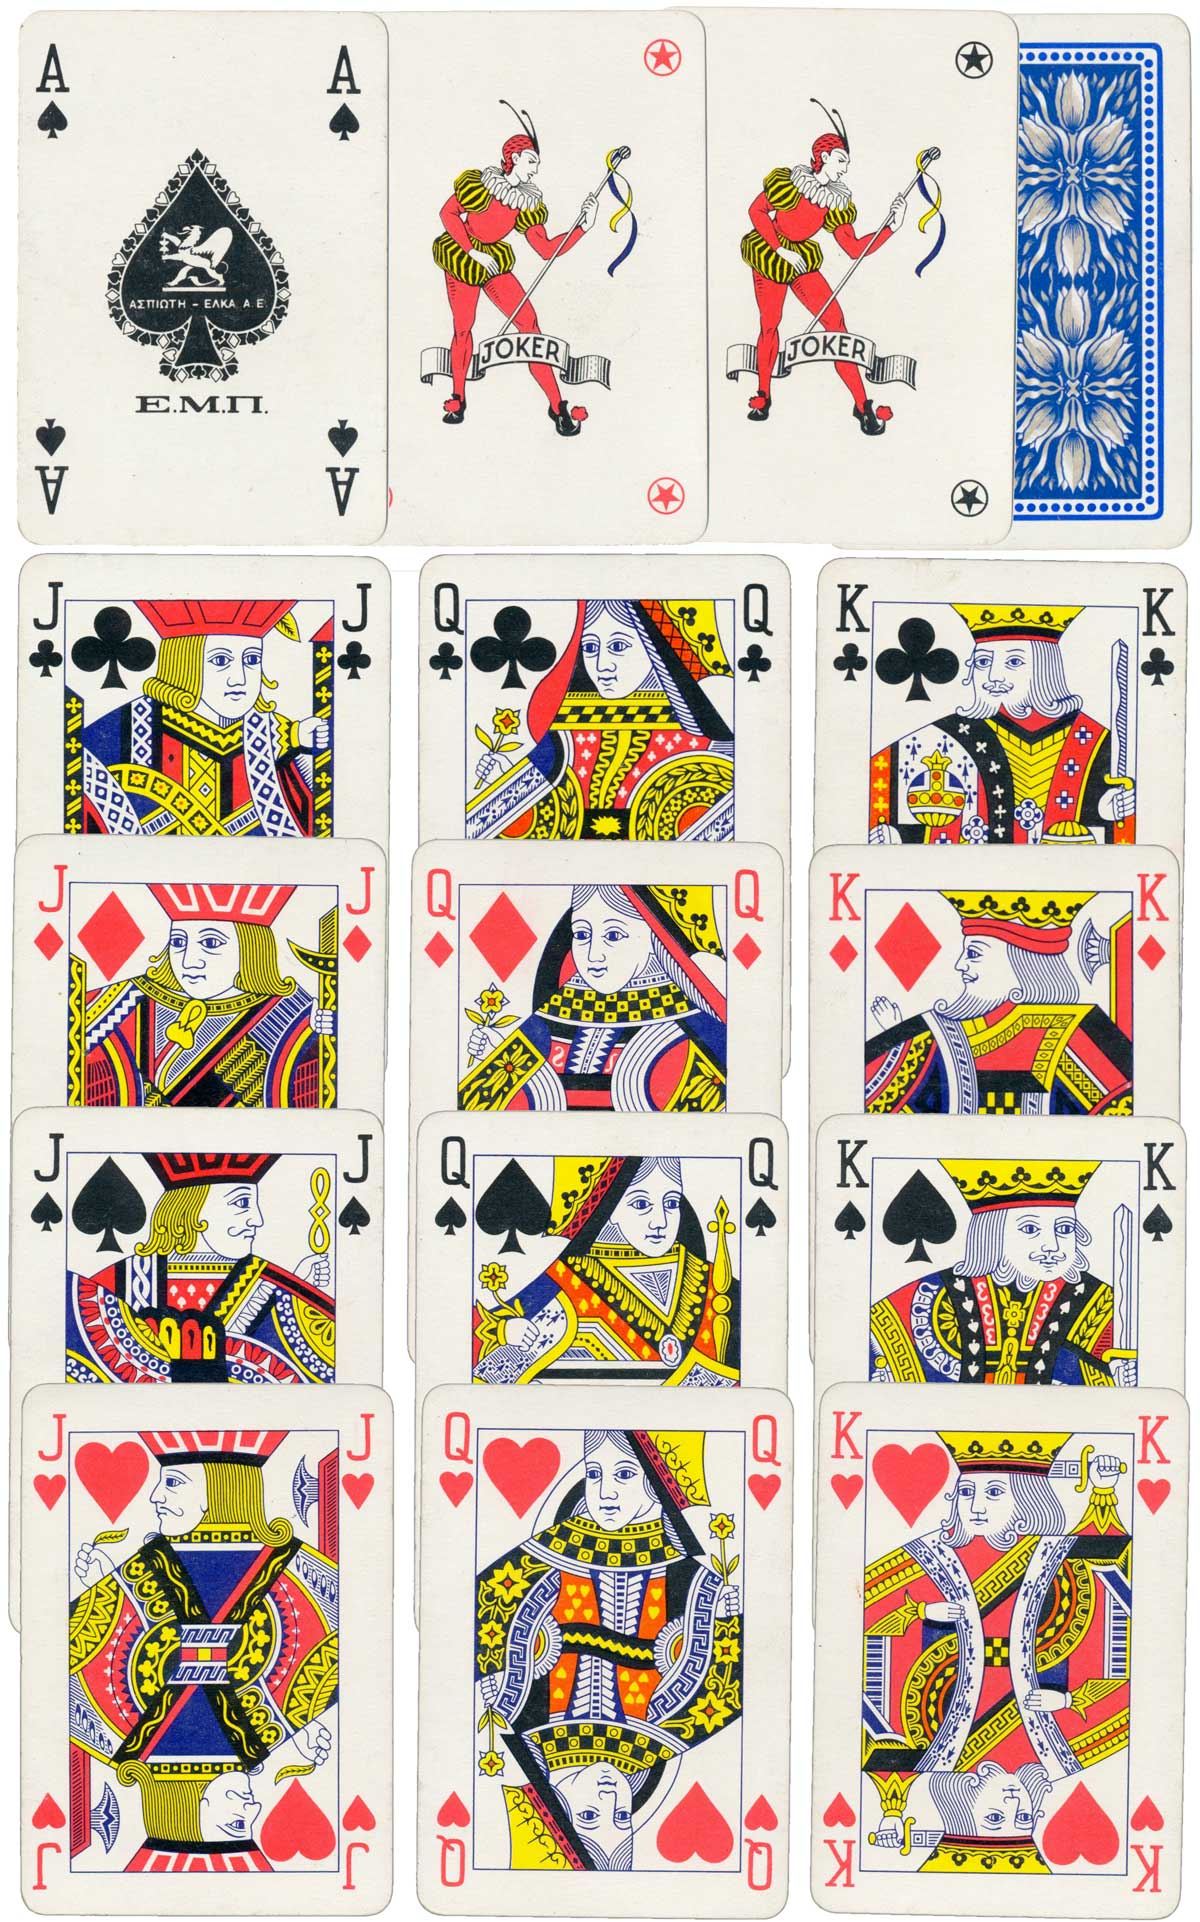 standard Anglo-American playing cards manufactured by Aspioti-Elka of Athens, c.1960s